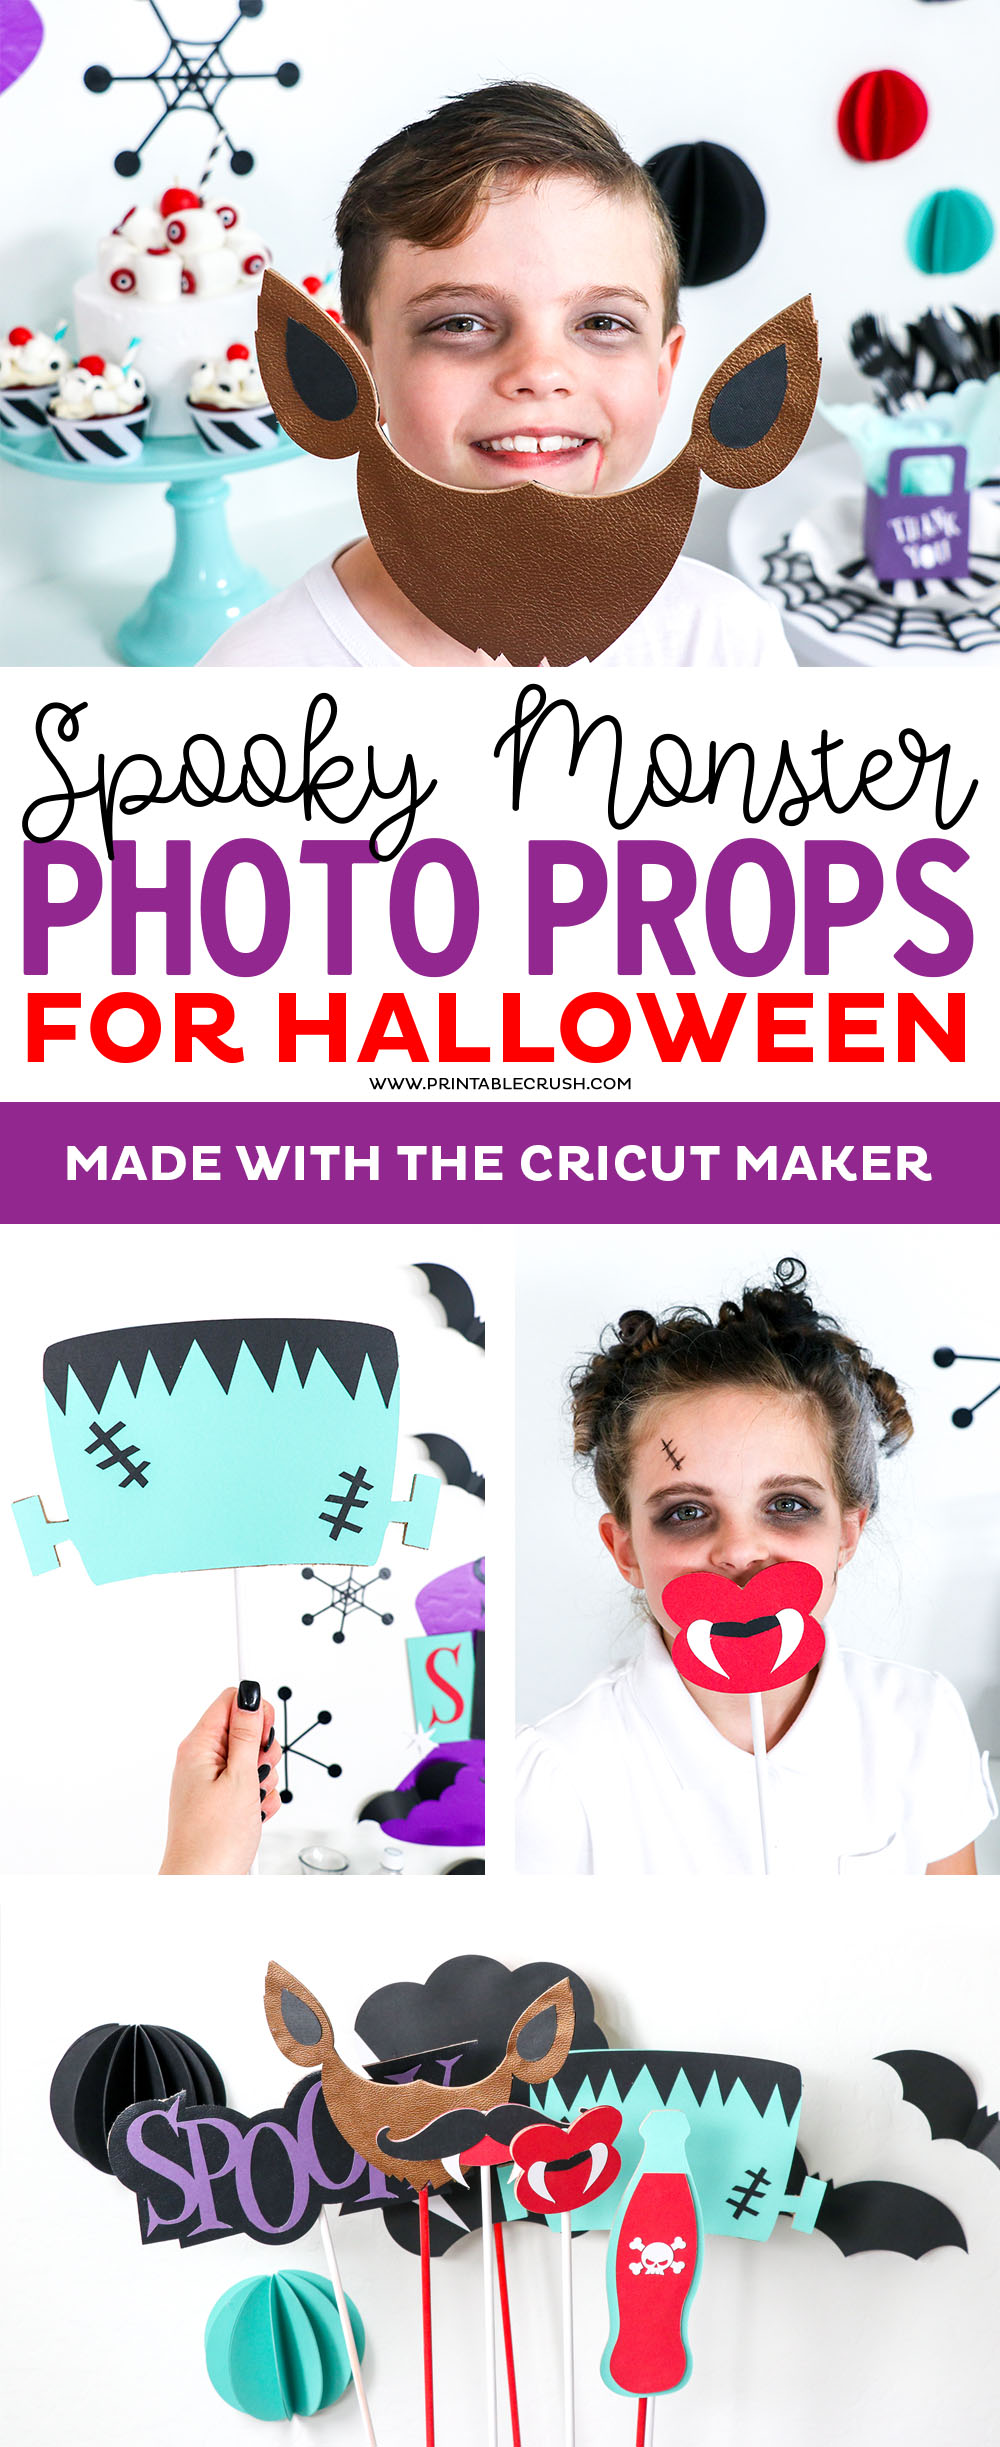 Make these Monster Photo Props with your Cricut Maker! They will be a hit at your next Halloween party or use them as part of a Halloween Costume. #cricutmade #sayitwithcricut #cricutmaker #halloweenparty #halloweenphotoprops